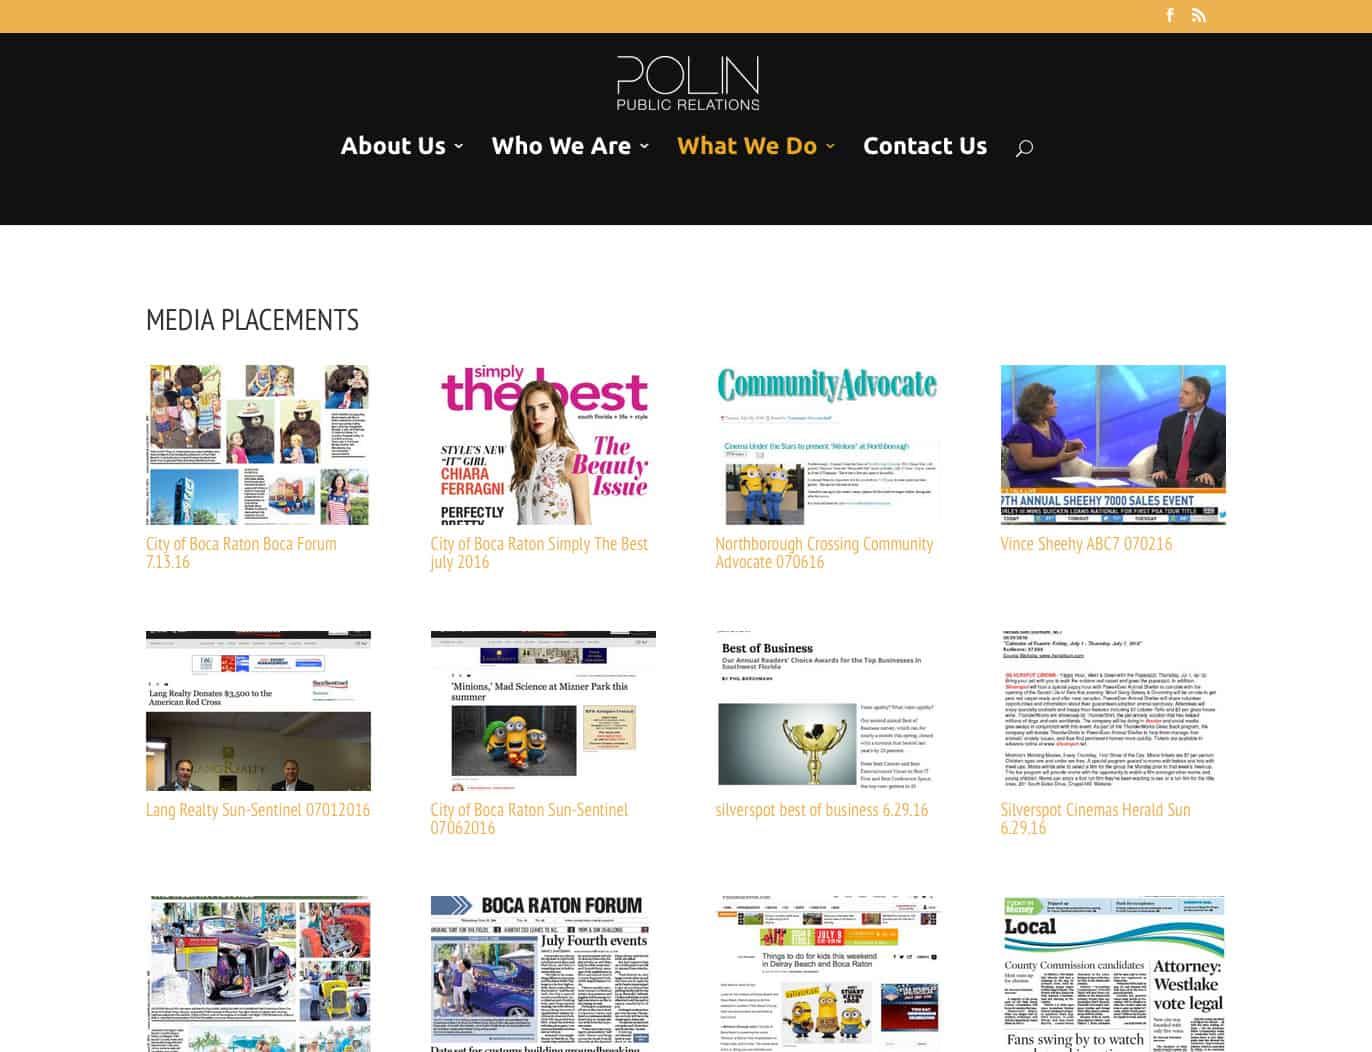 Polin PR Media Placements Page